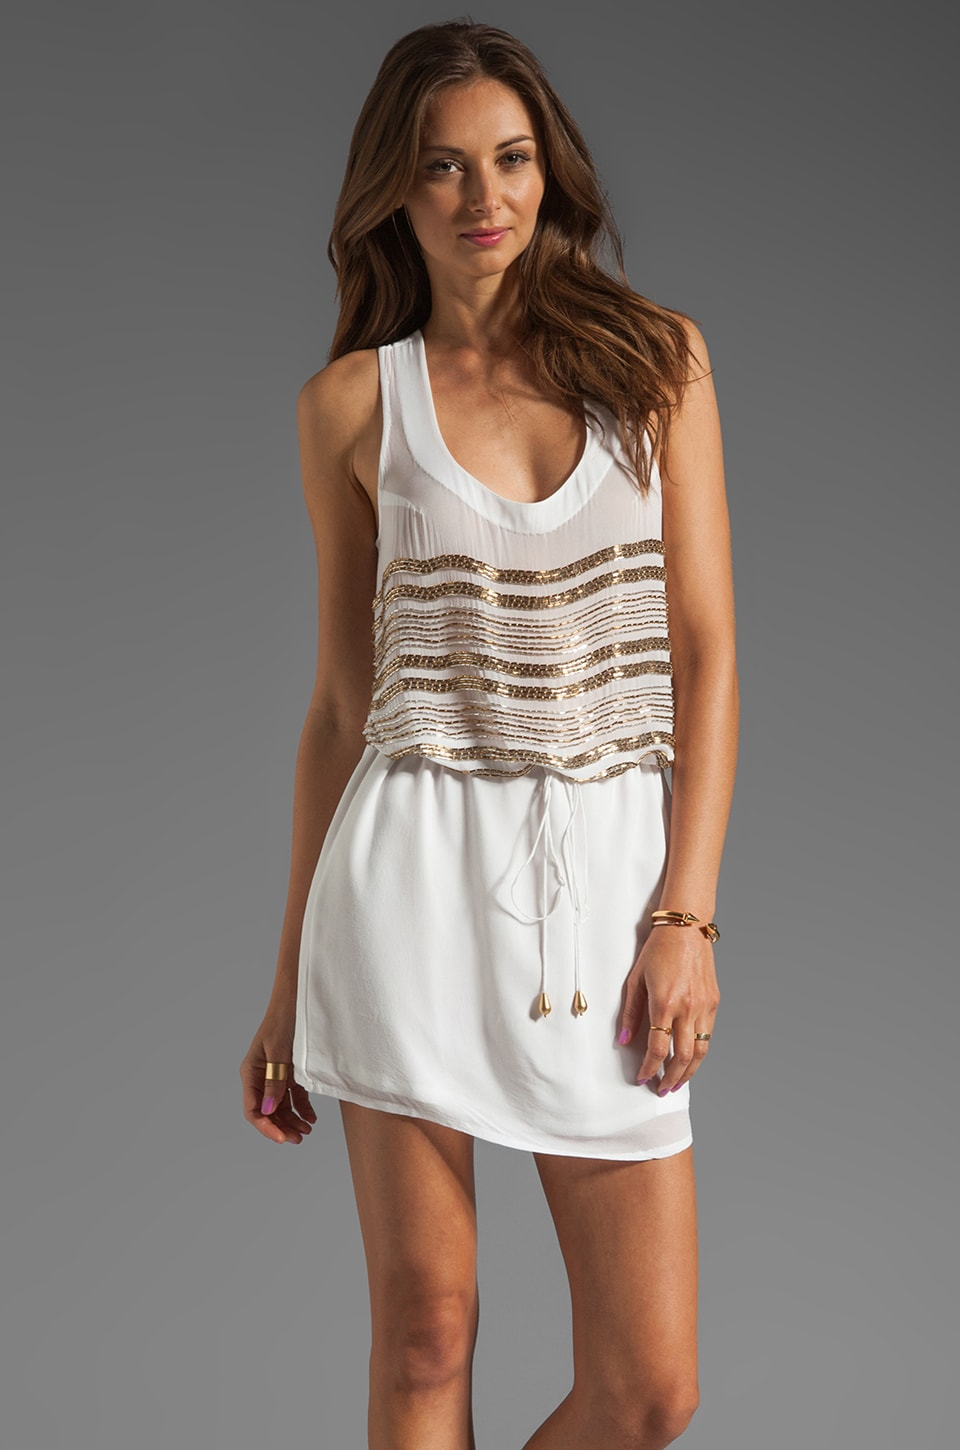 Karina Grimaldi Margarita Beaded Mini Dress in White